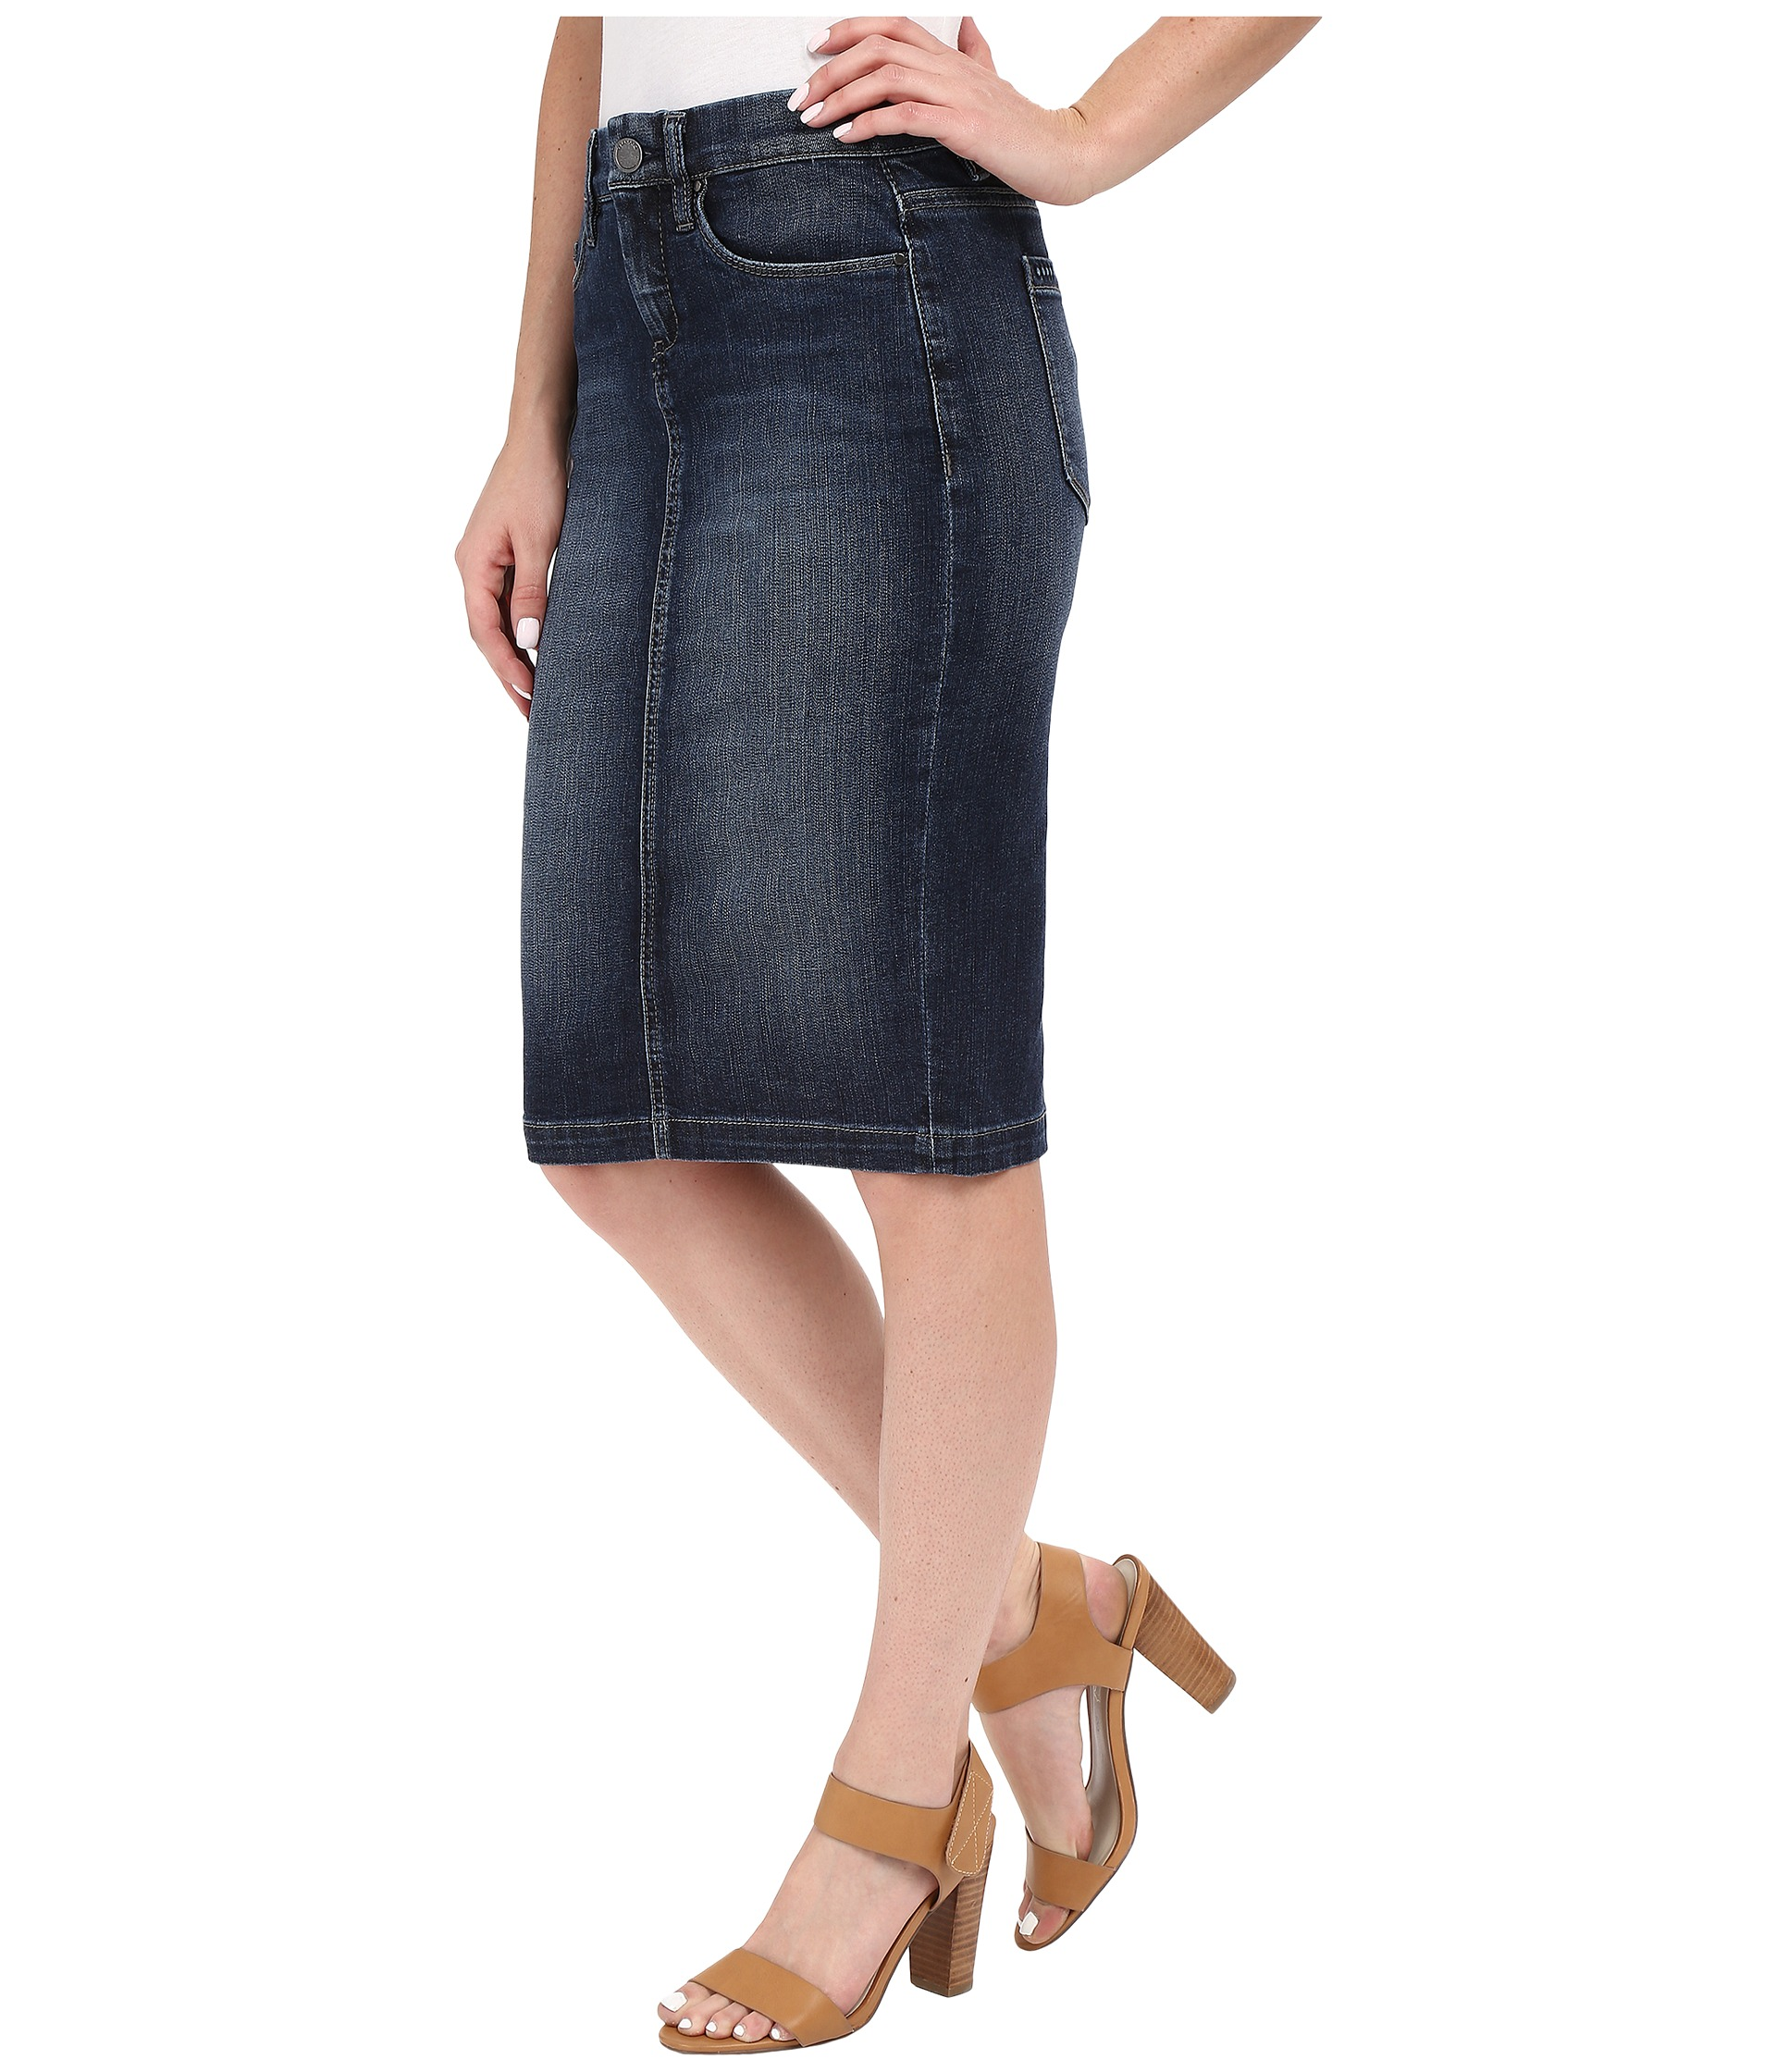 Blank NYC Denim Pencil Skirt in Denim Blue at Zappos.com